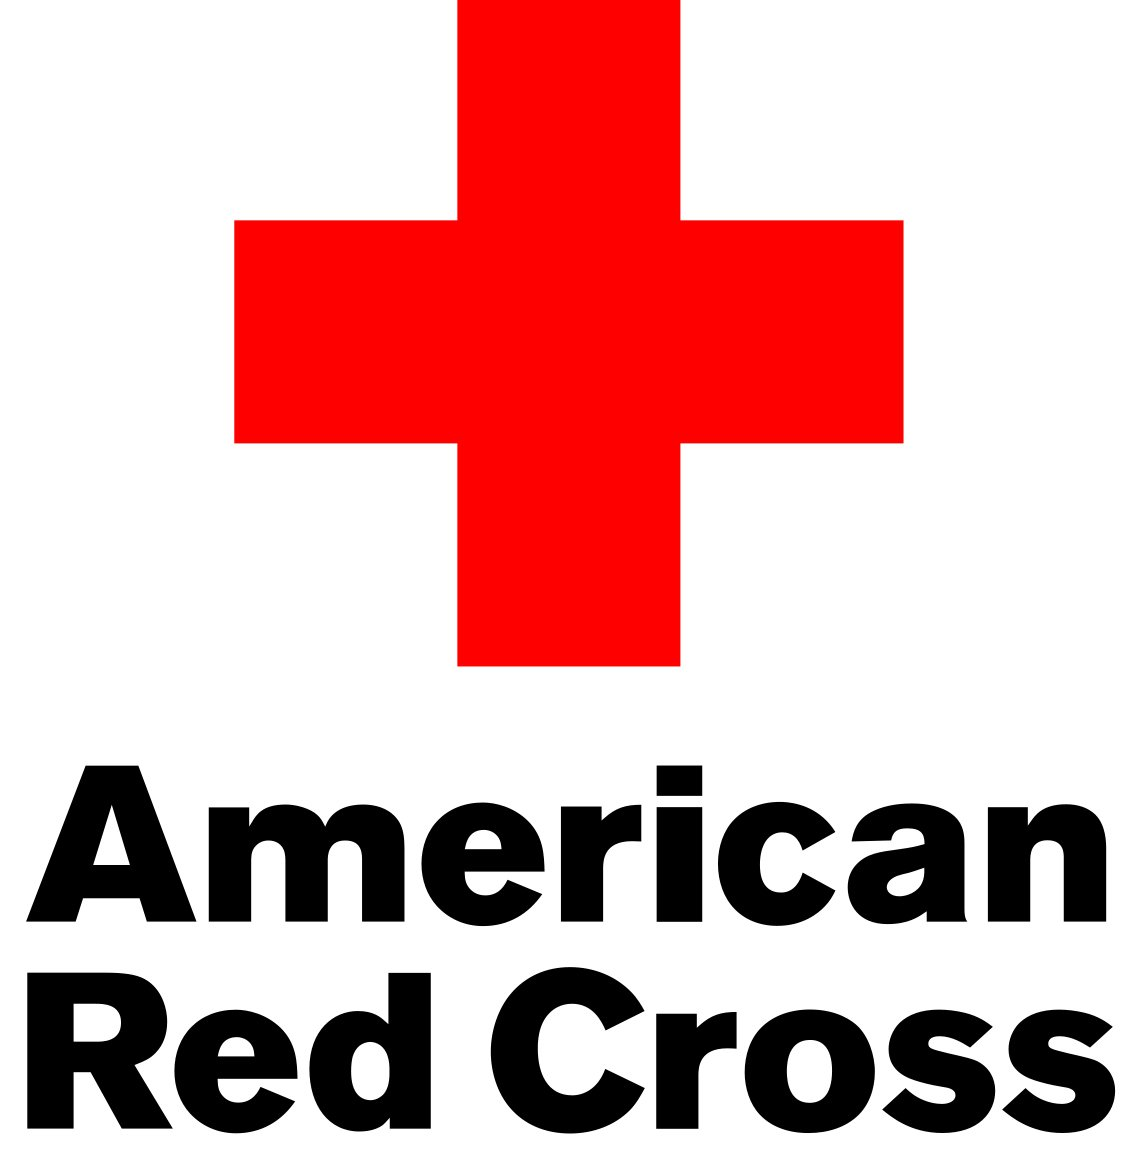 American Red Cross Logo American Red Cross Symbol